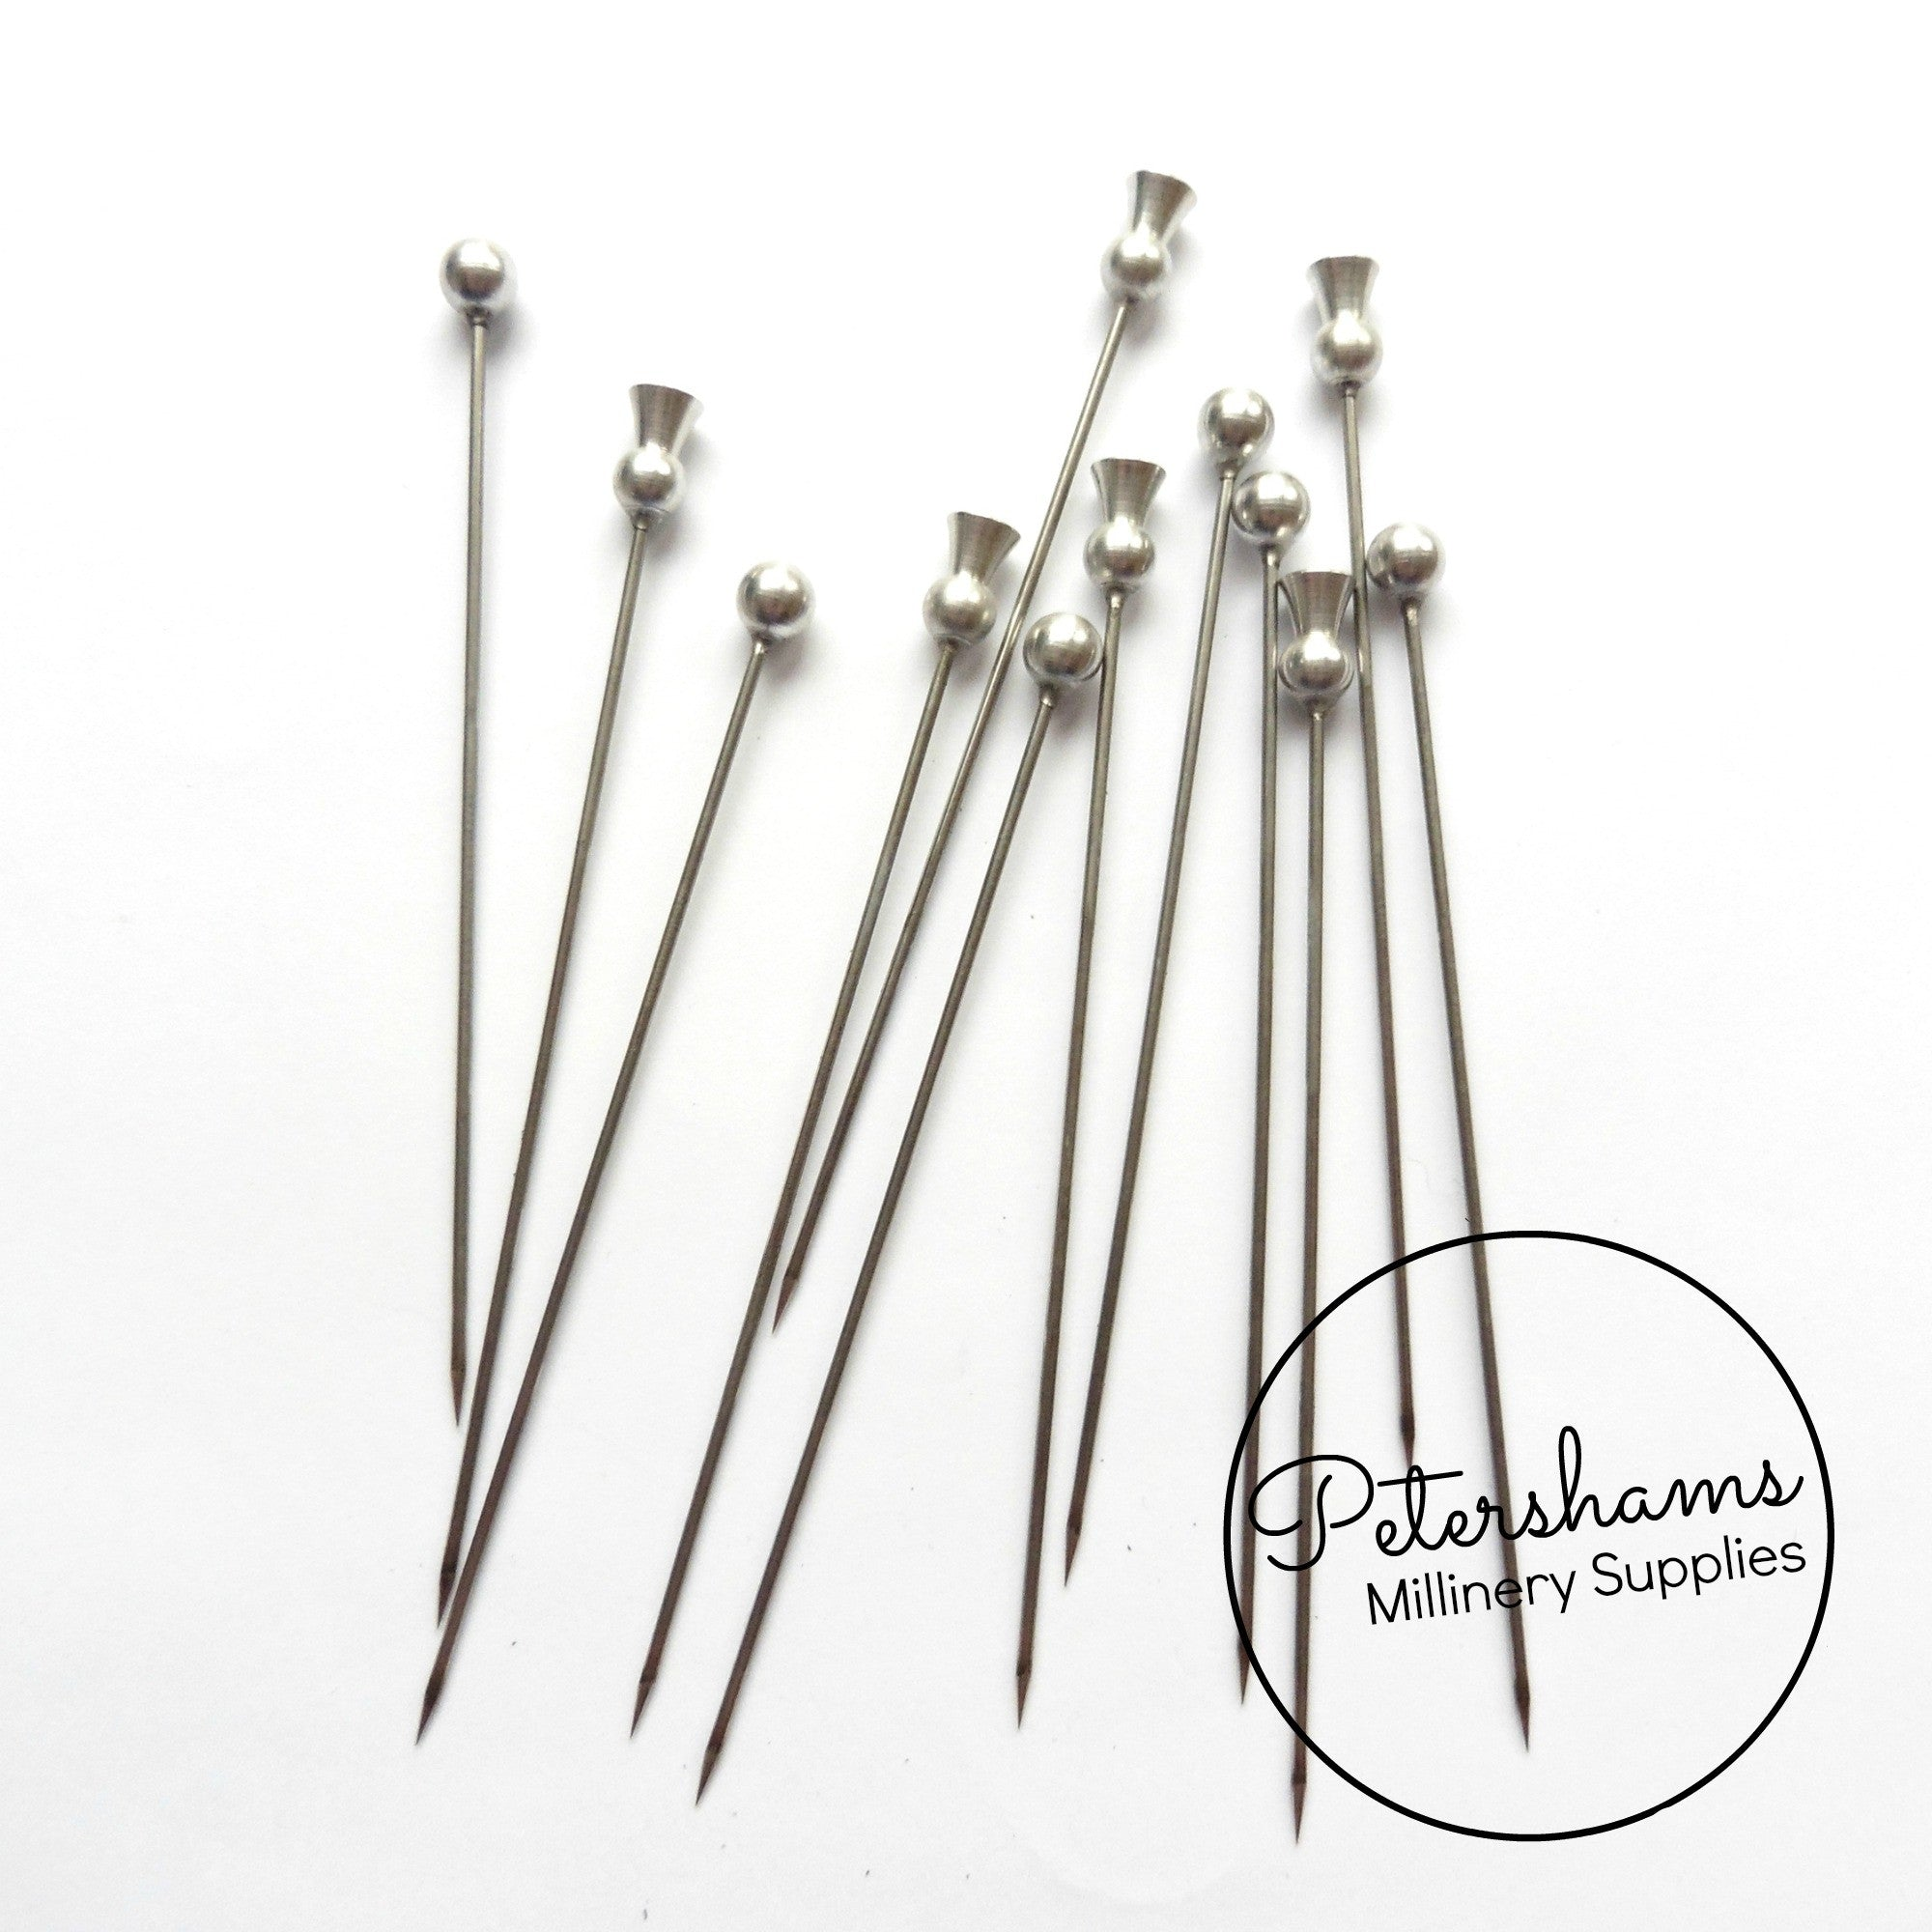 3aa93c746a7 Set of 12 Extra Long 9.5cm (3.7 inch) Metal Millinery Hat Pins -. Set of 12  Extra Long 9.5cm (3.7 inch) Metal Millinery Hat Pins -